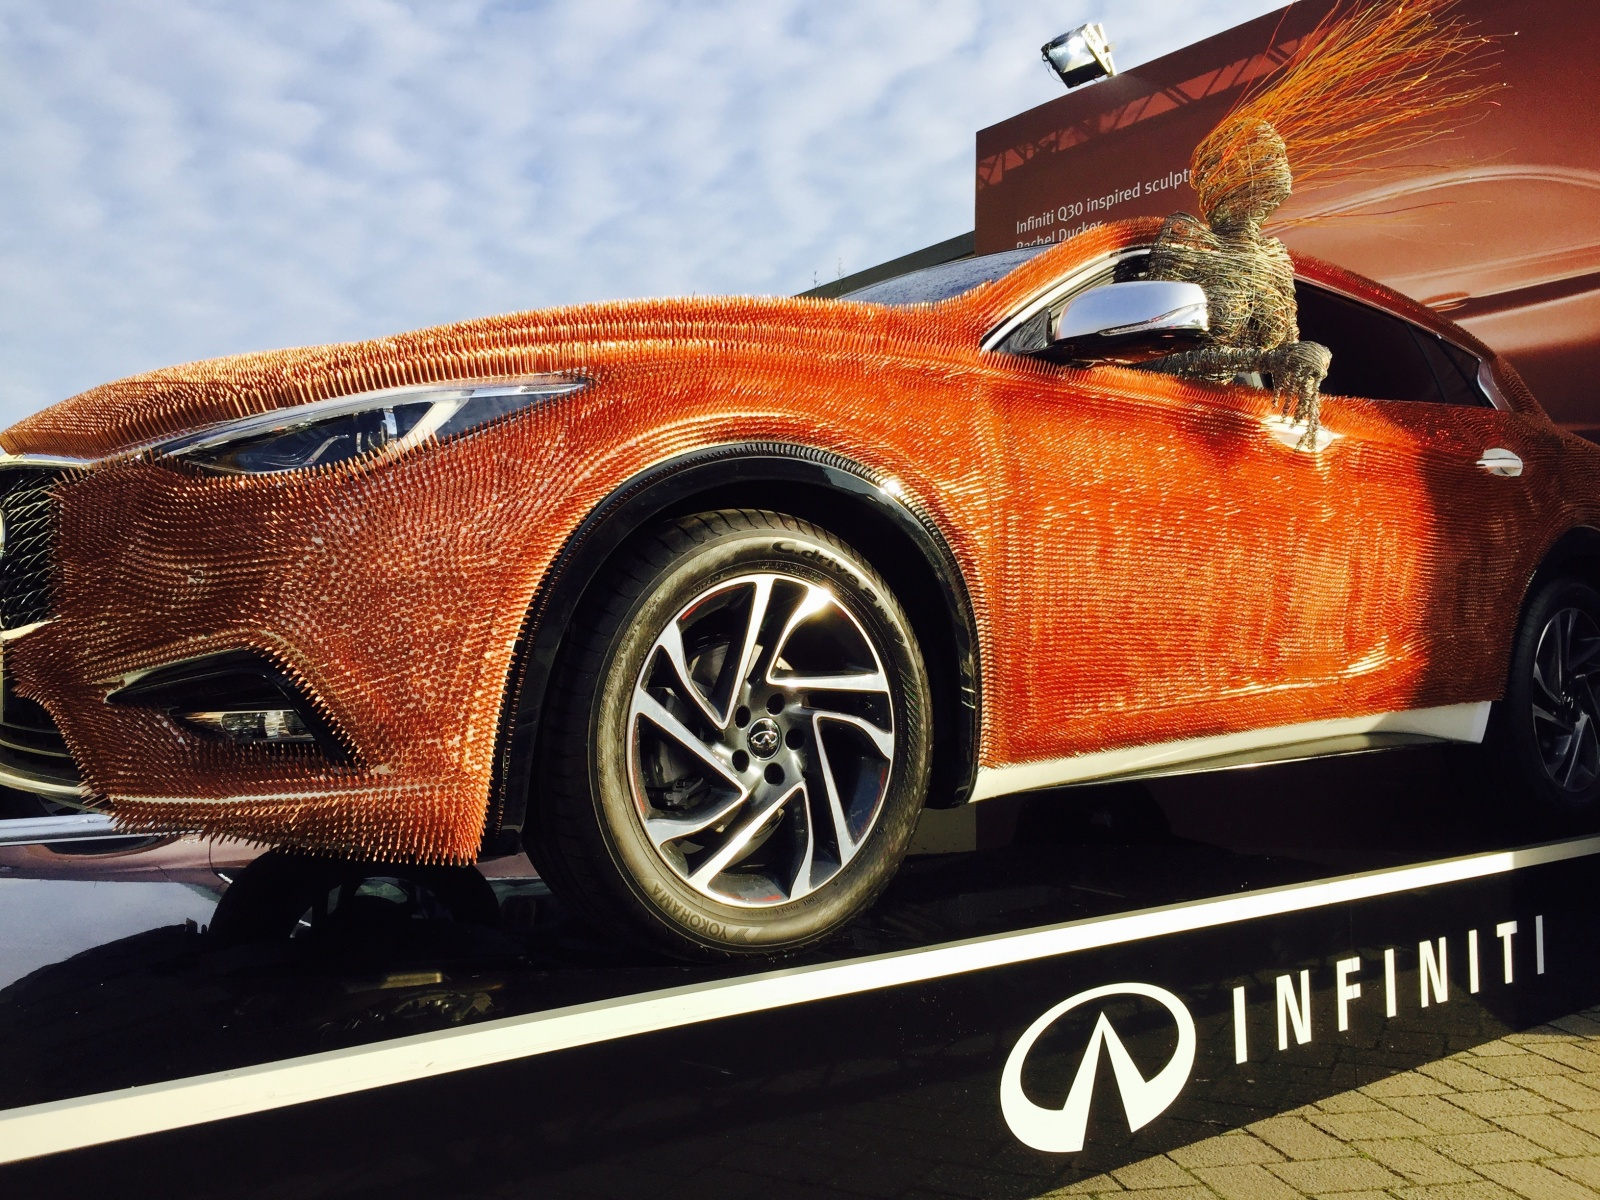 infiniti-makes-an-impression-at-the-london-art-fair-with-q30-car-art-photo-gallery_1